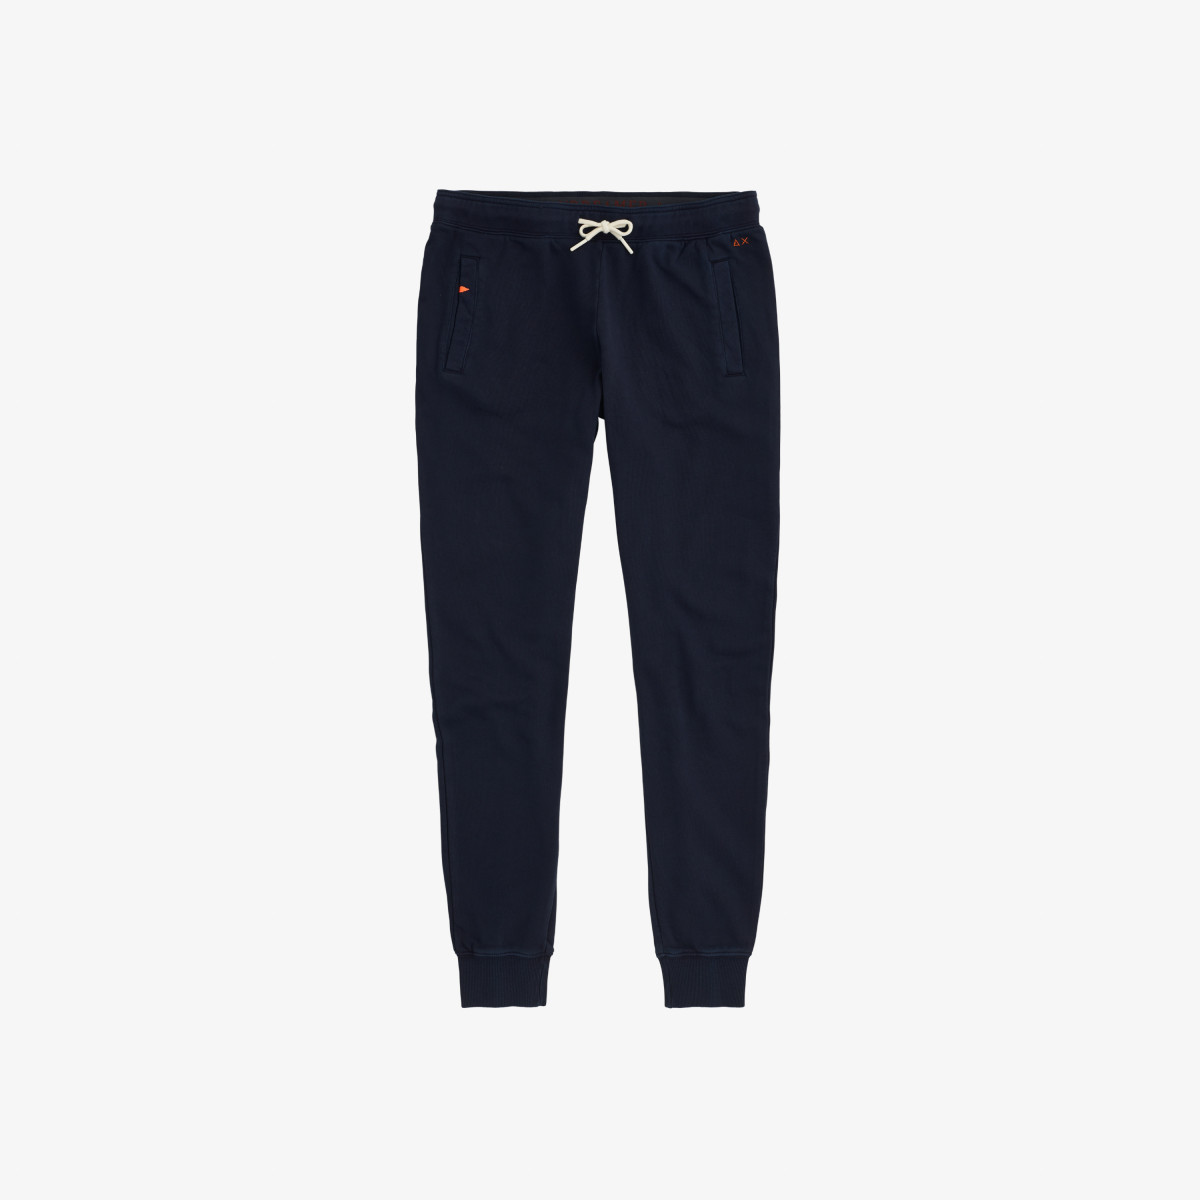 PANT COLD DYE COTTON FL NAVY BLUE